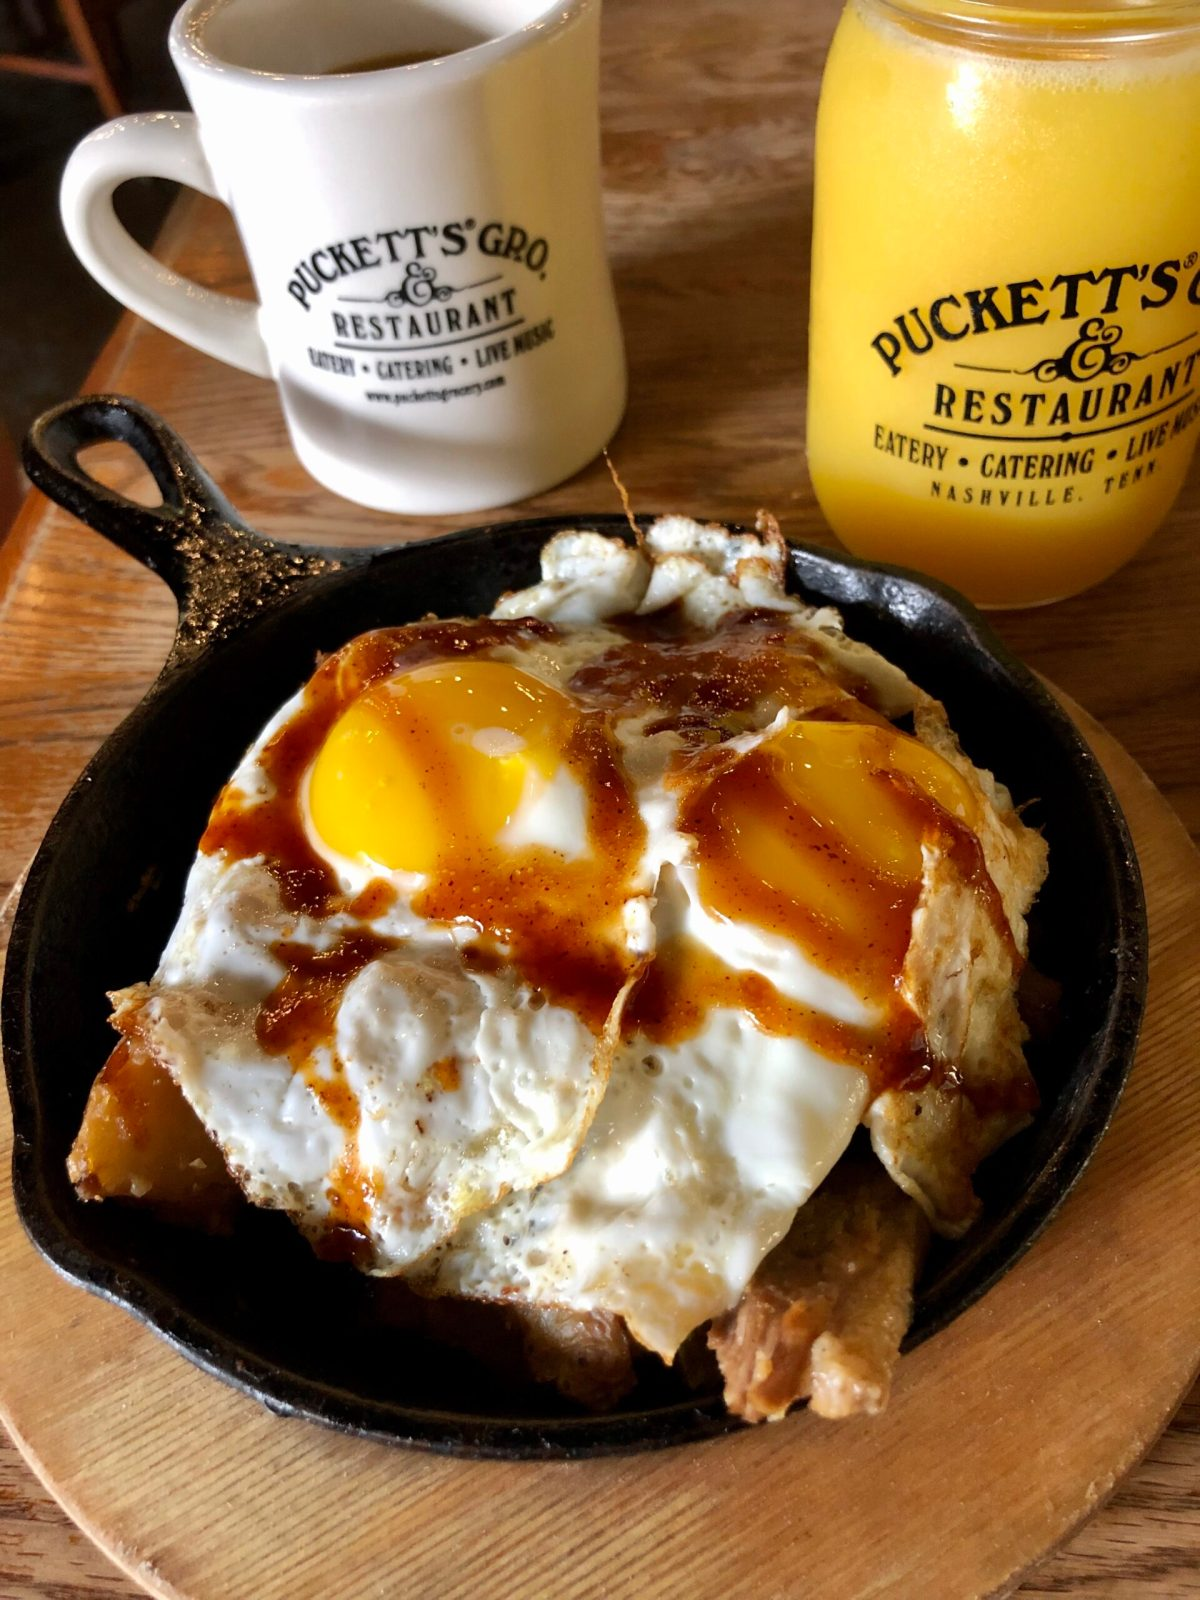 Pucketts | Downtown Nashville #pucketts #puckettsgrocery #puckettsrestaurant #nashvollebreakfast #nashvillerestaurants #nashville #nashvilletourism